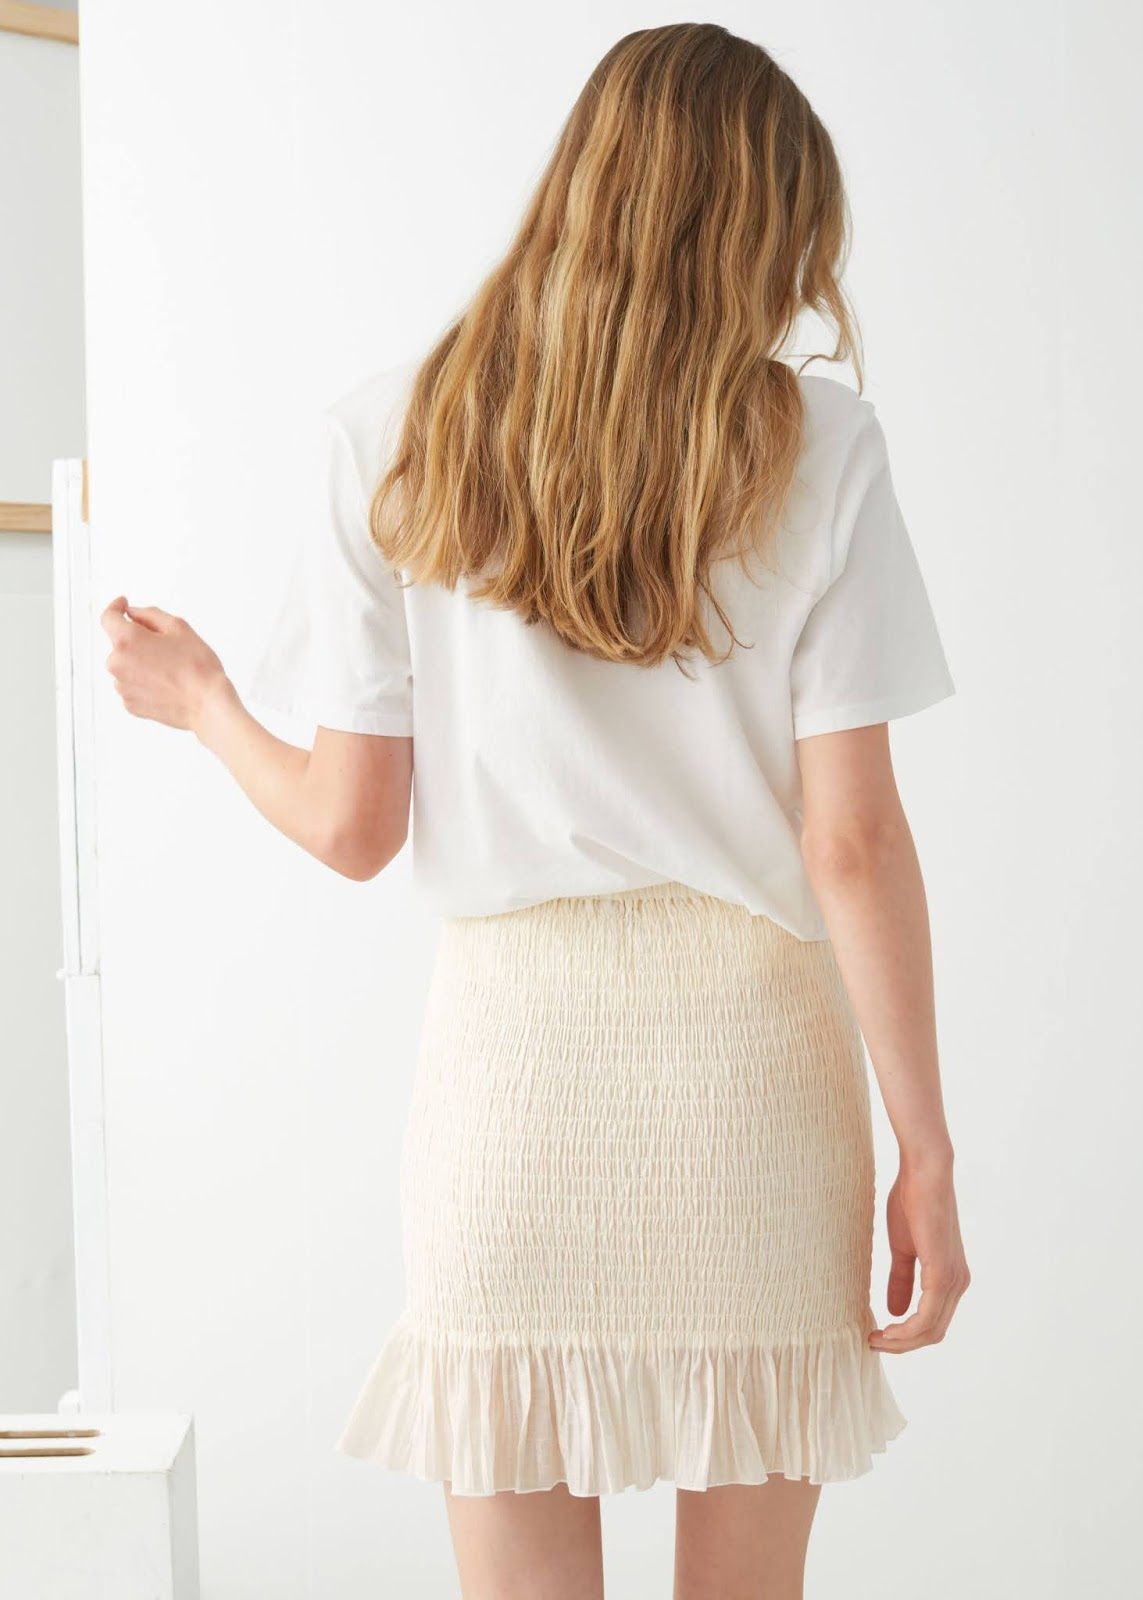 Summer Outfit: White Tee and Under-$100 Mini Skirt With Ruffled Hem